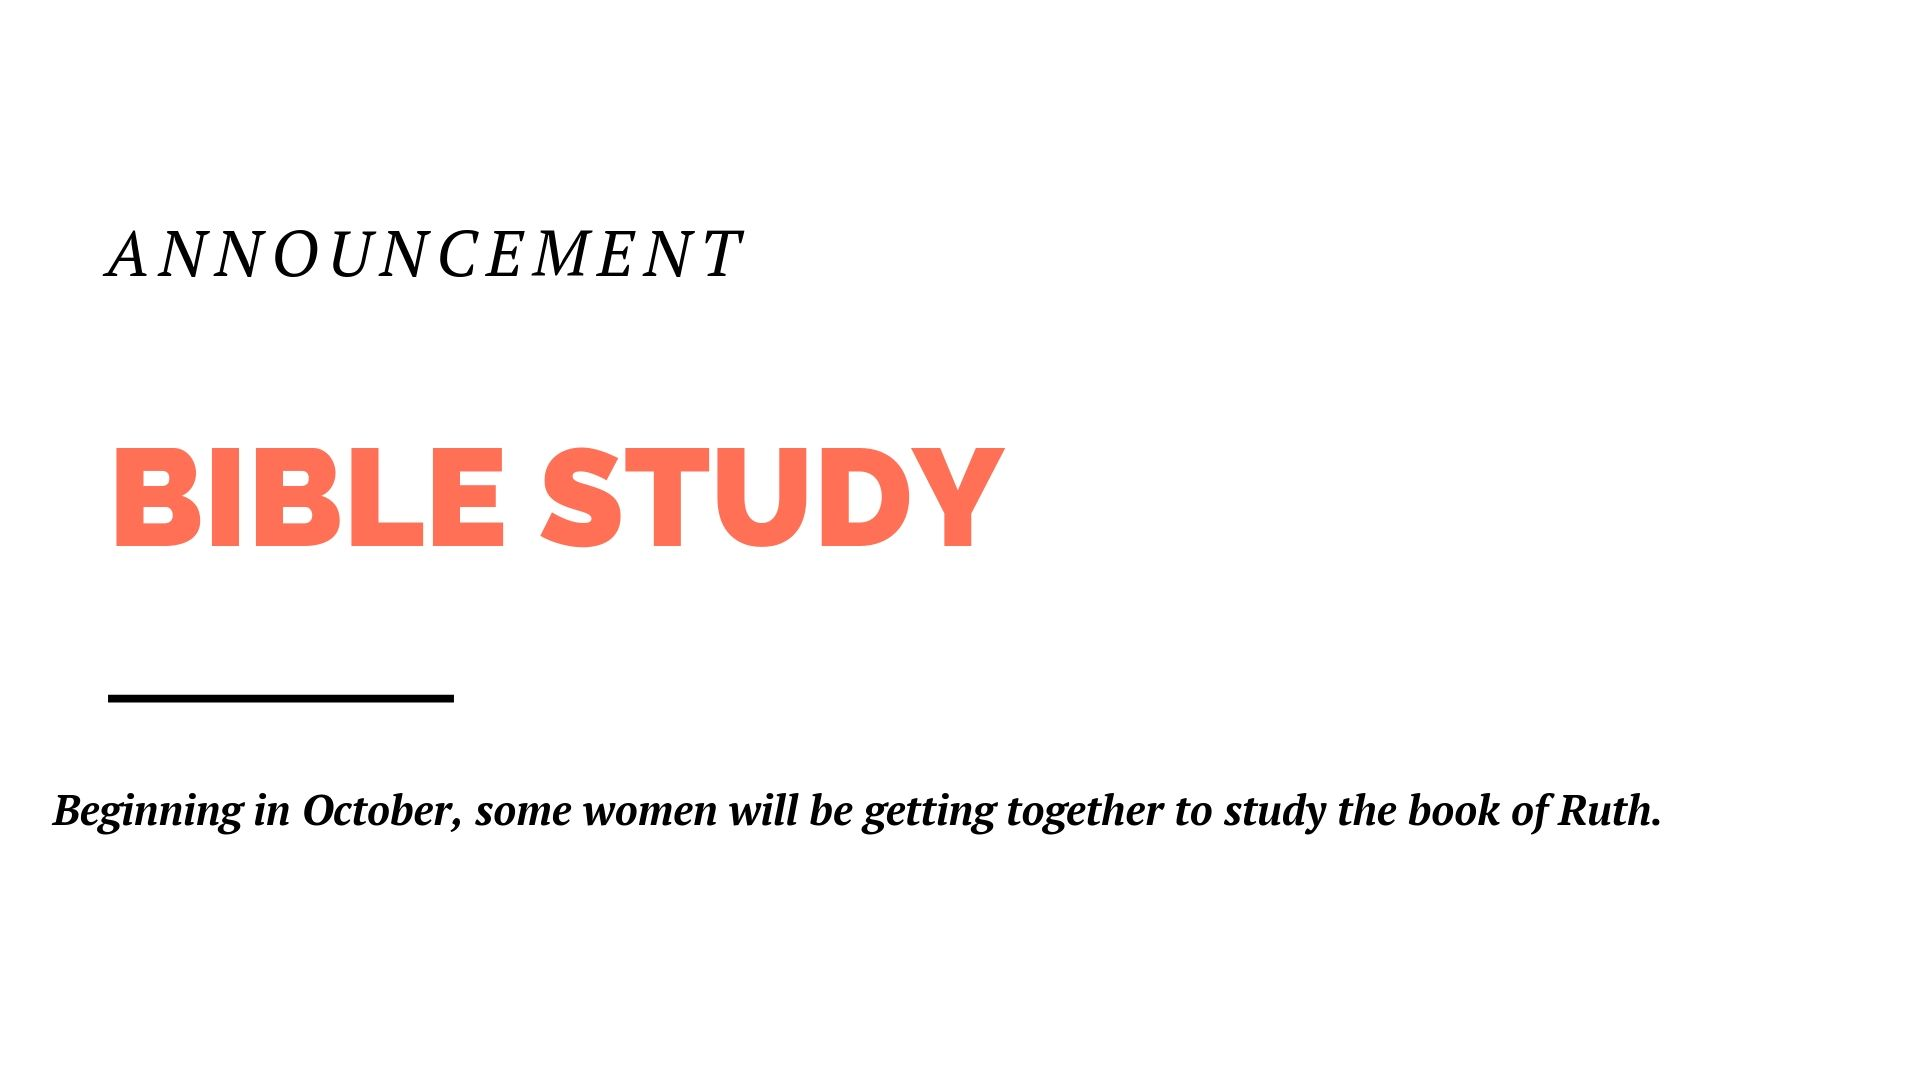 Beginning in October, some women will be getting together to study the book of Ruth. Email Erin Bourne for more details.